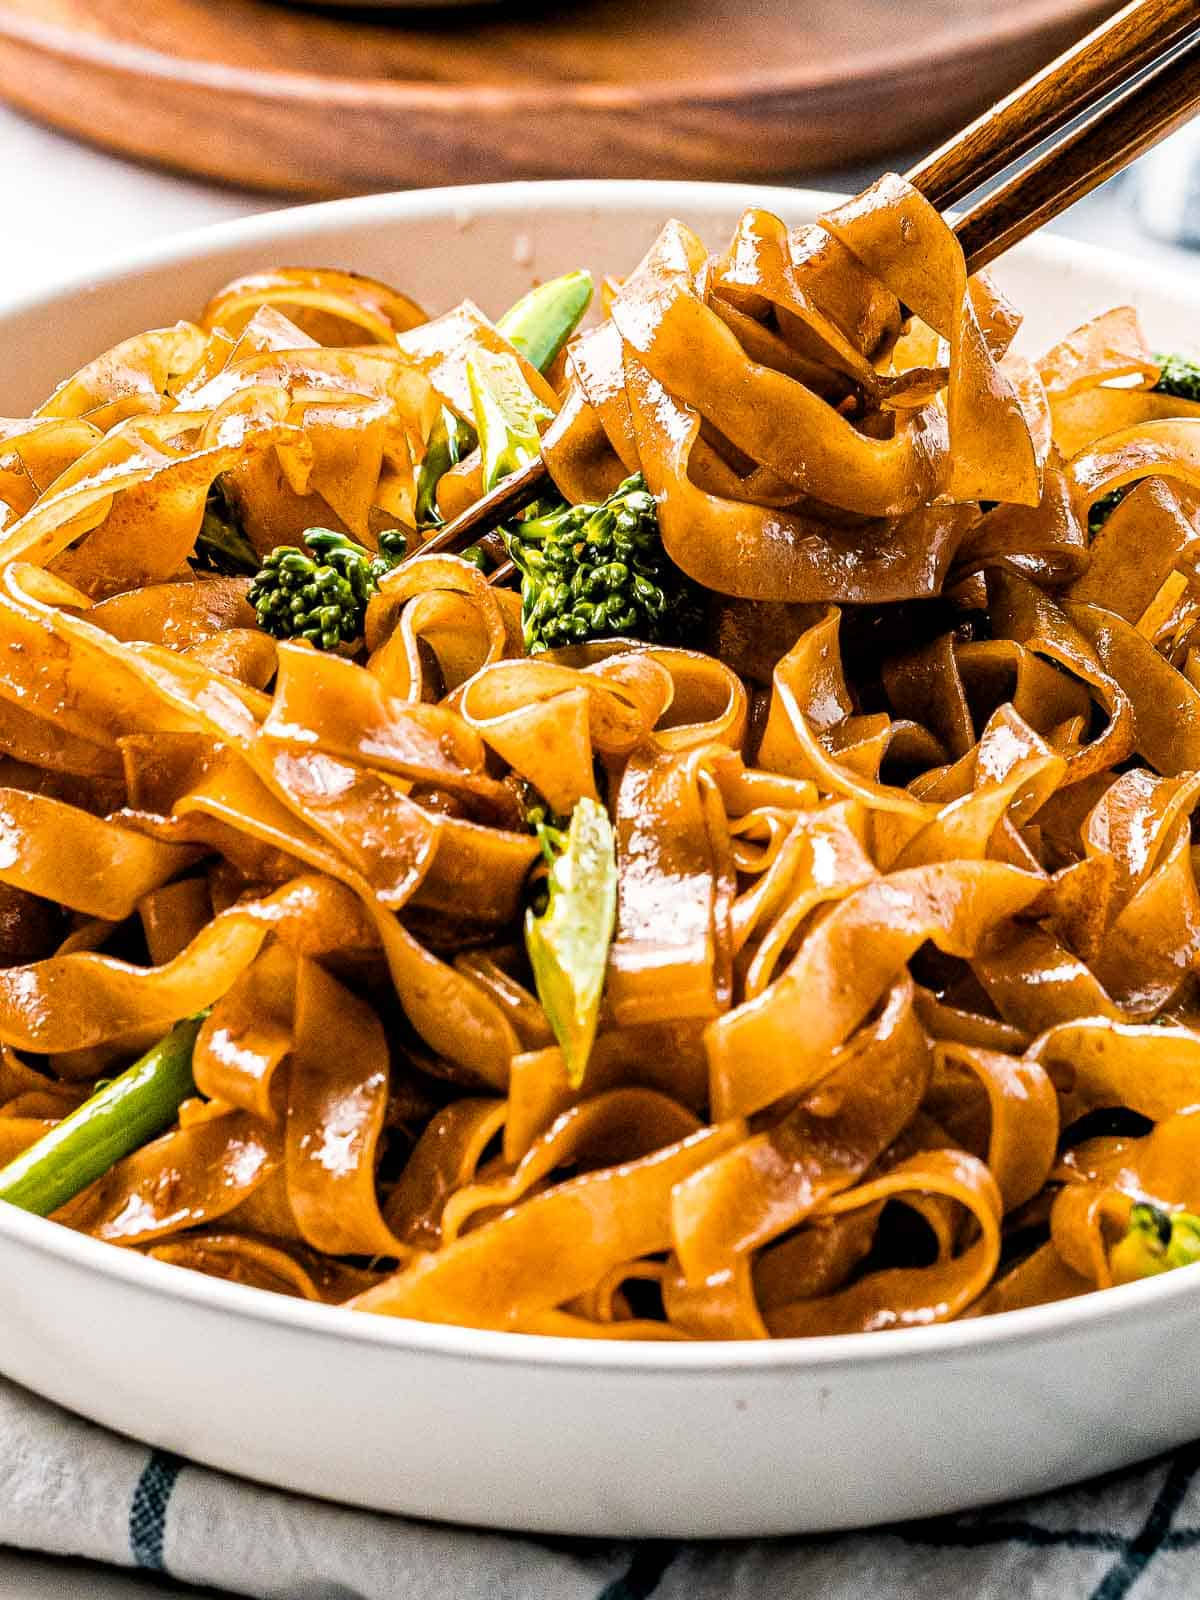 Pad see ew noodles stir fried until caramelized with Chinese broccoli wrapped around chopsticks.